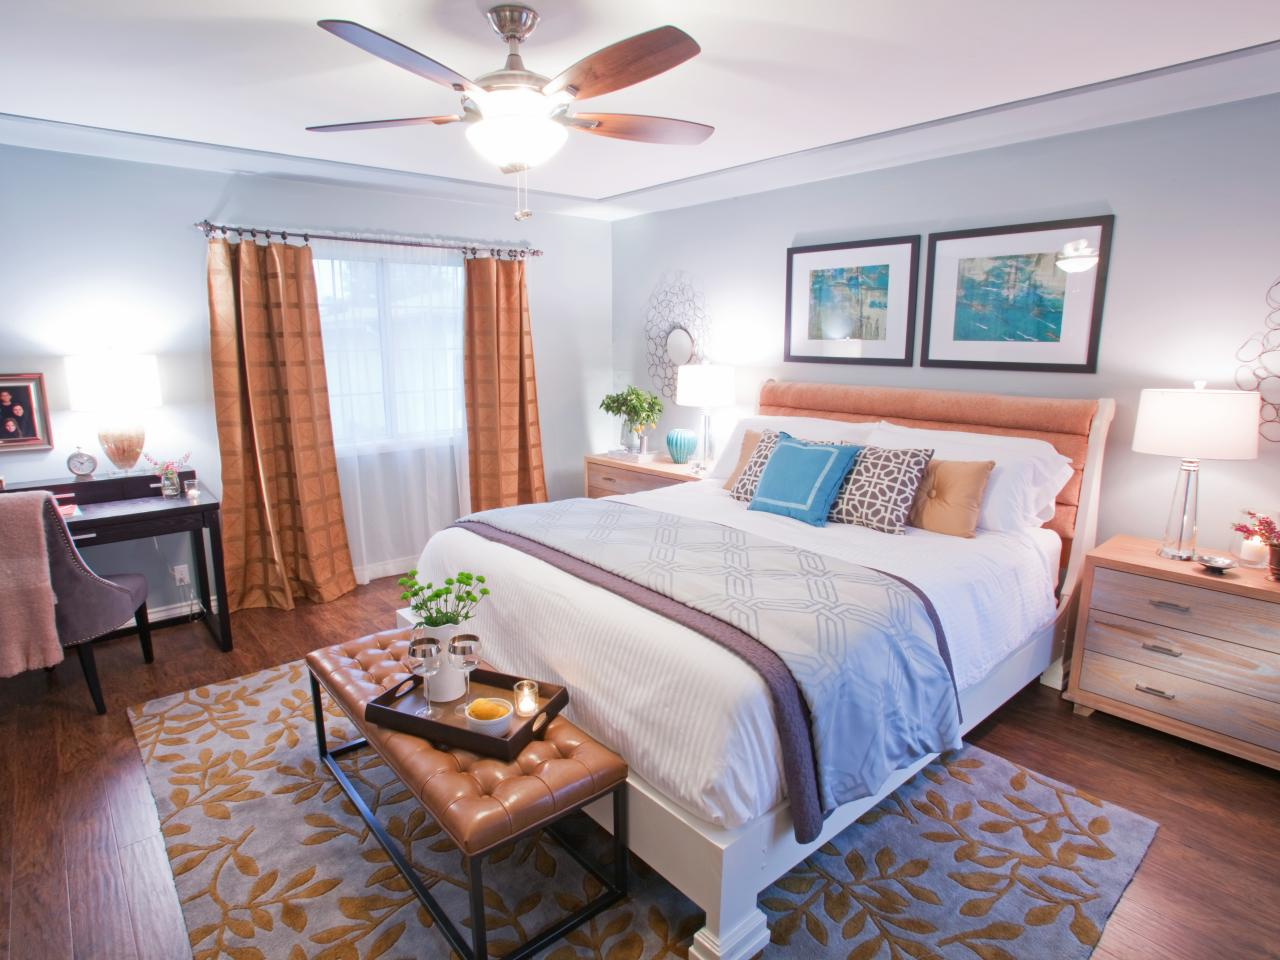 Photos Design On A Dime HGTV - Design on a dime bedroom ideas